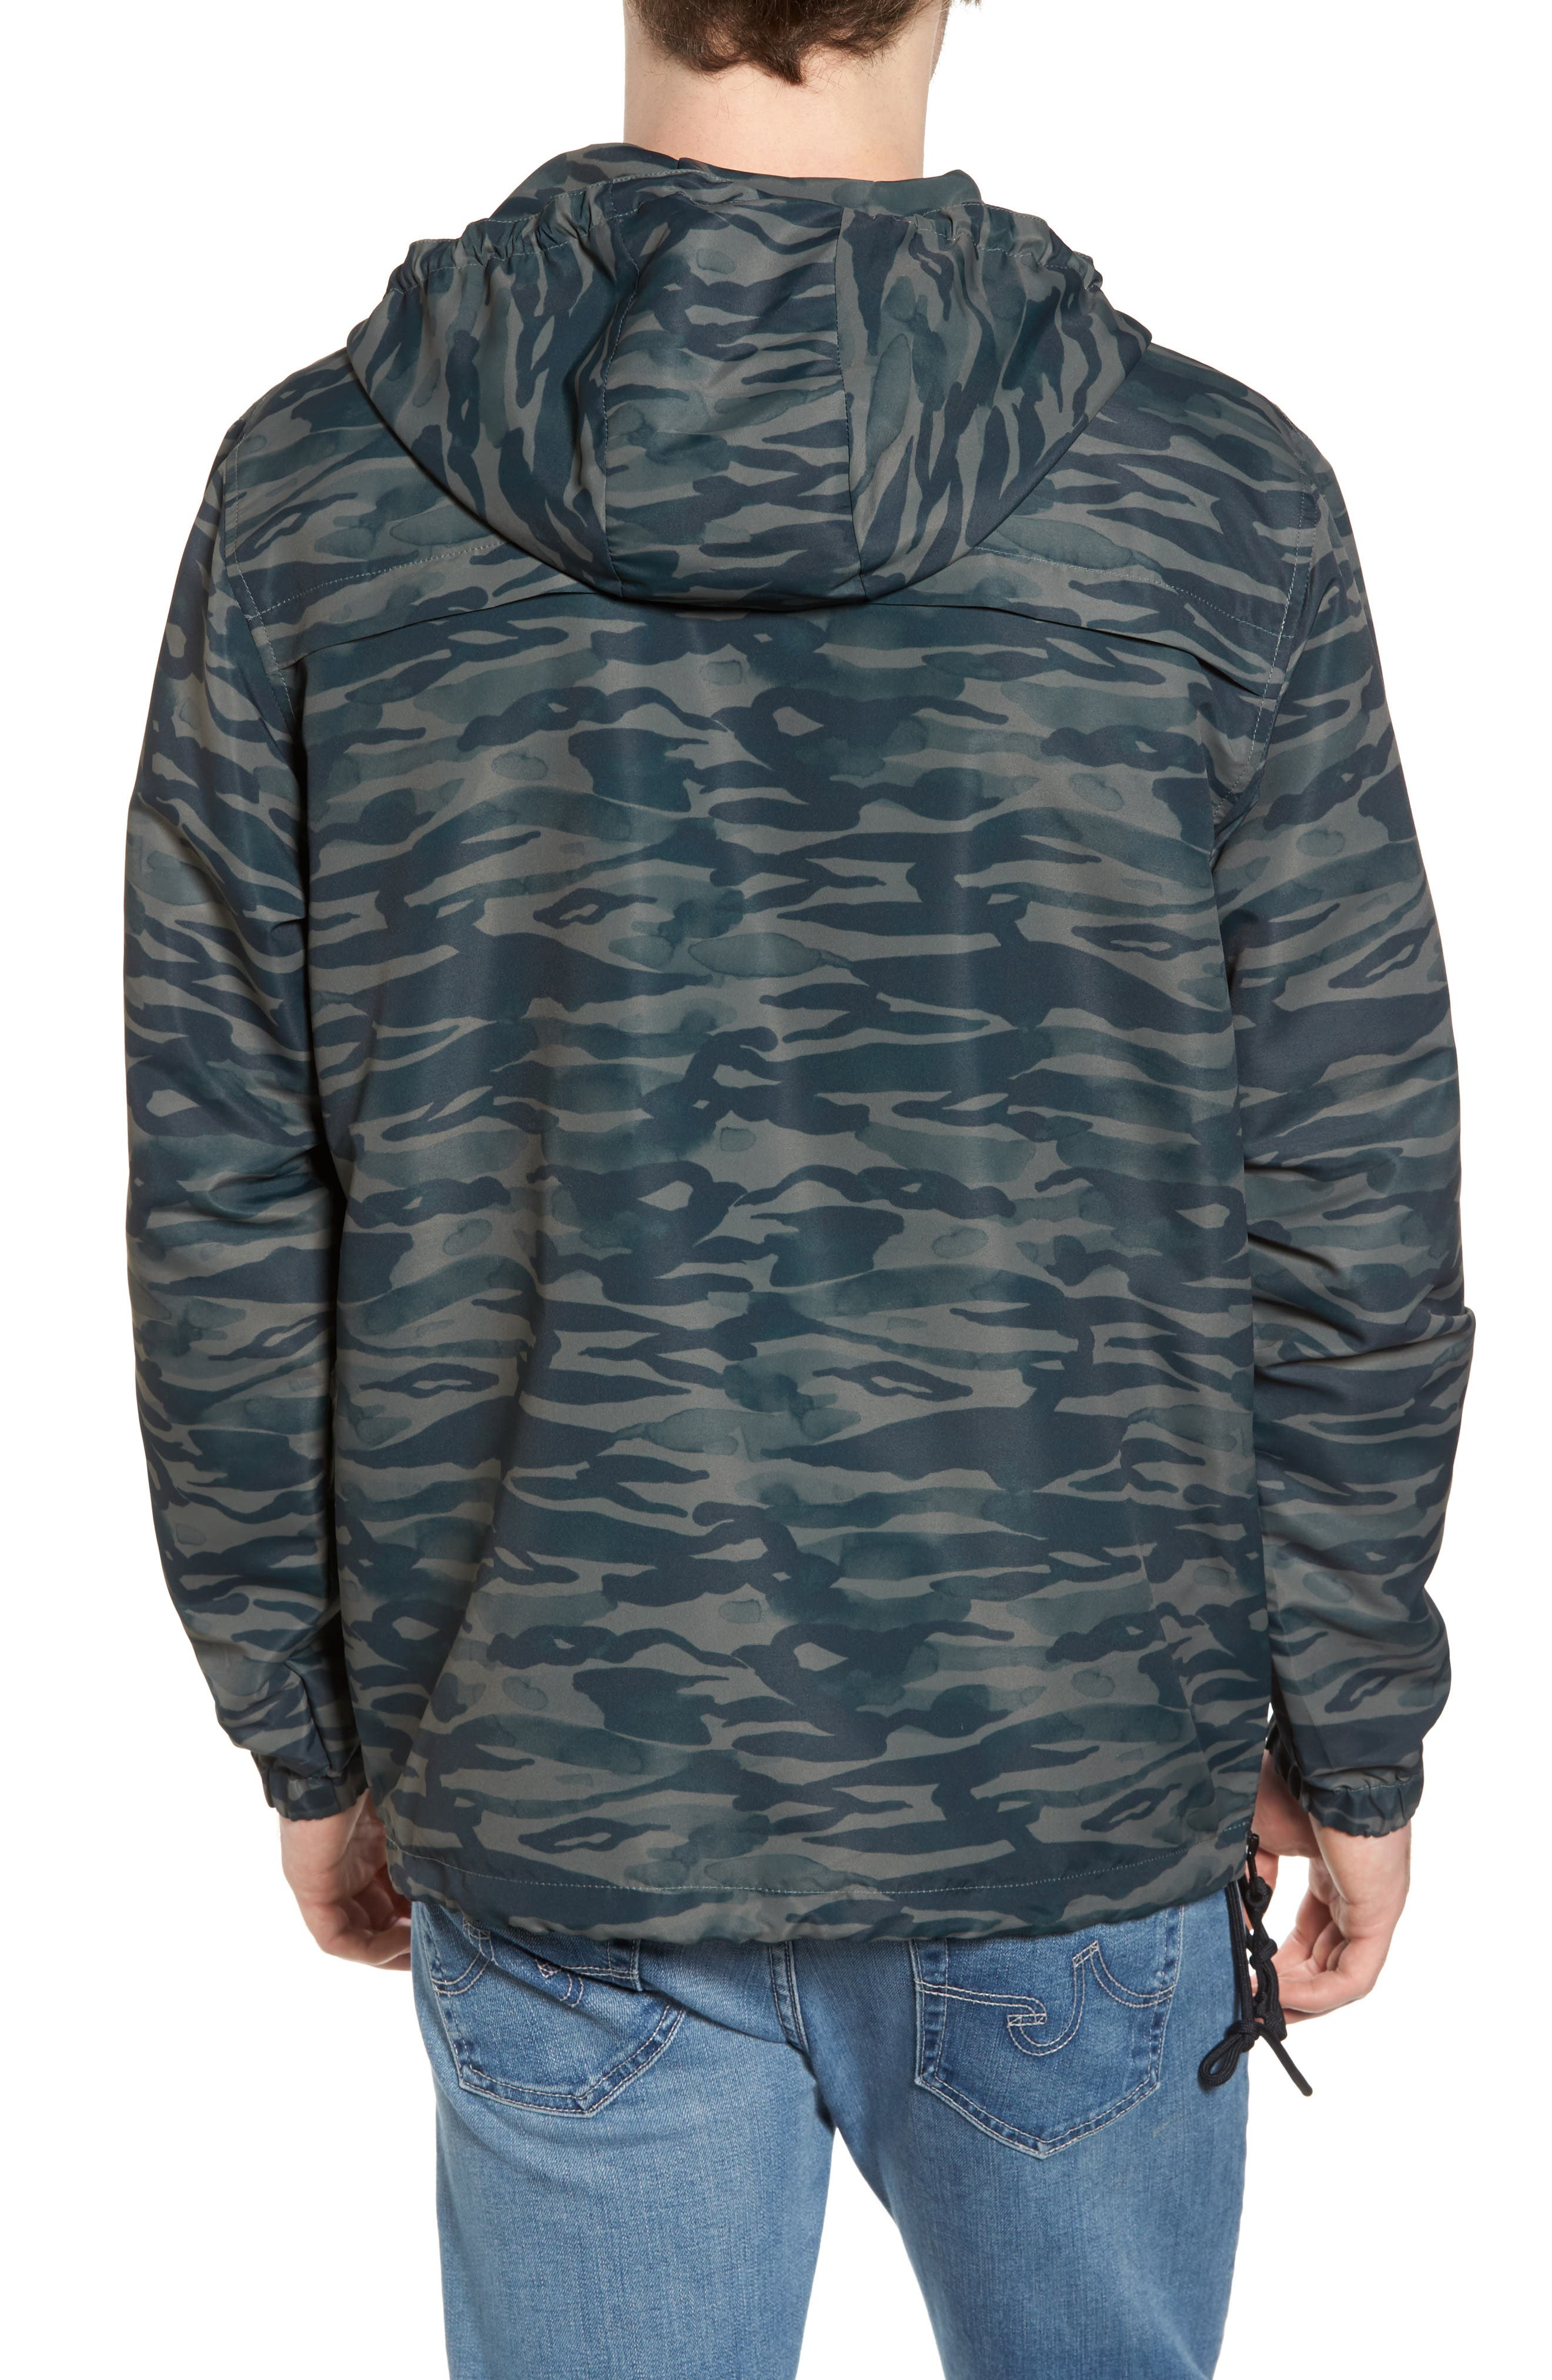 Packaway Hooded Anorak,                             Alternate thumbnail 6, color,